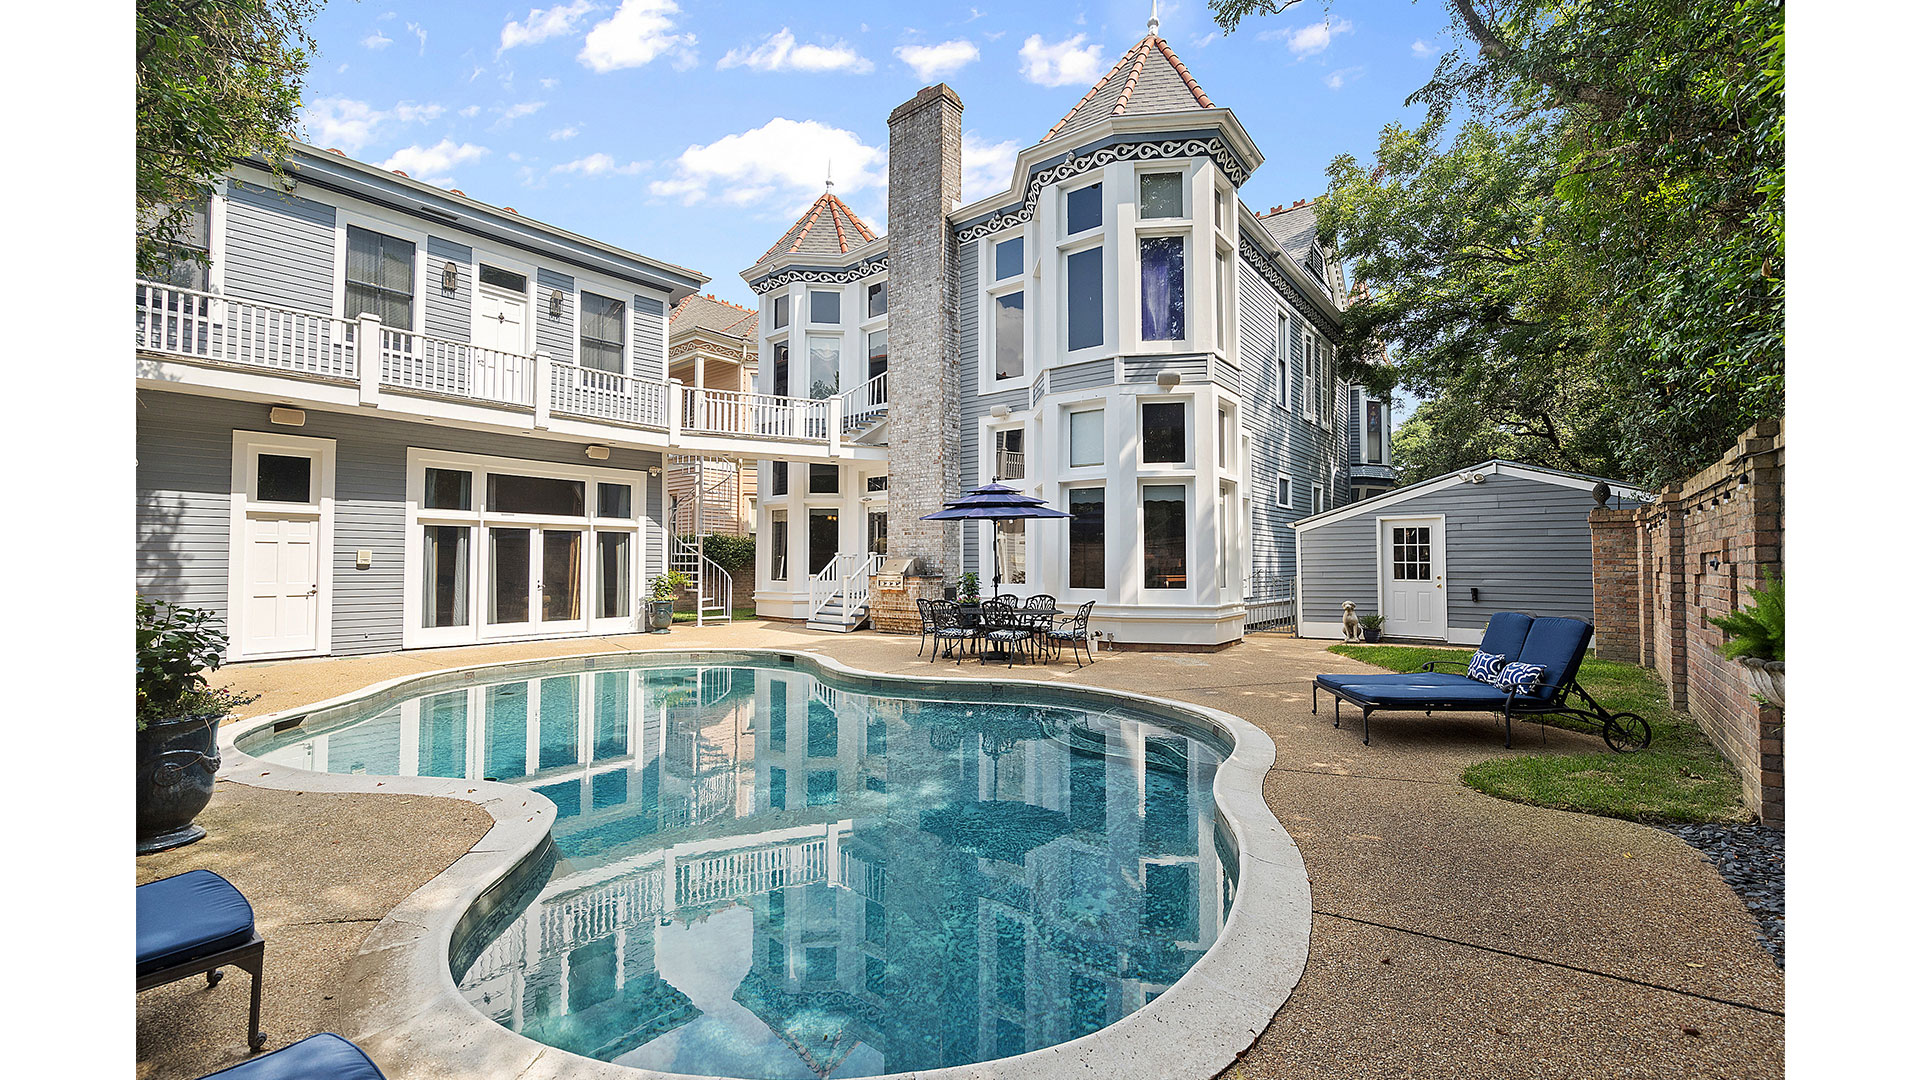 Carriage House and Pool